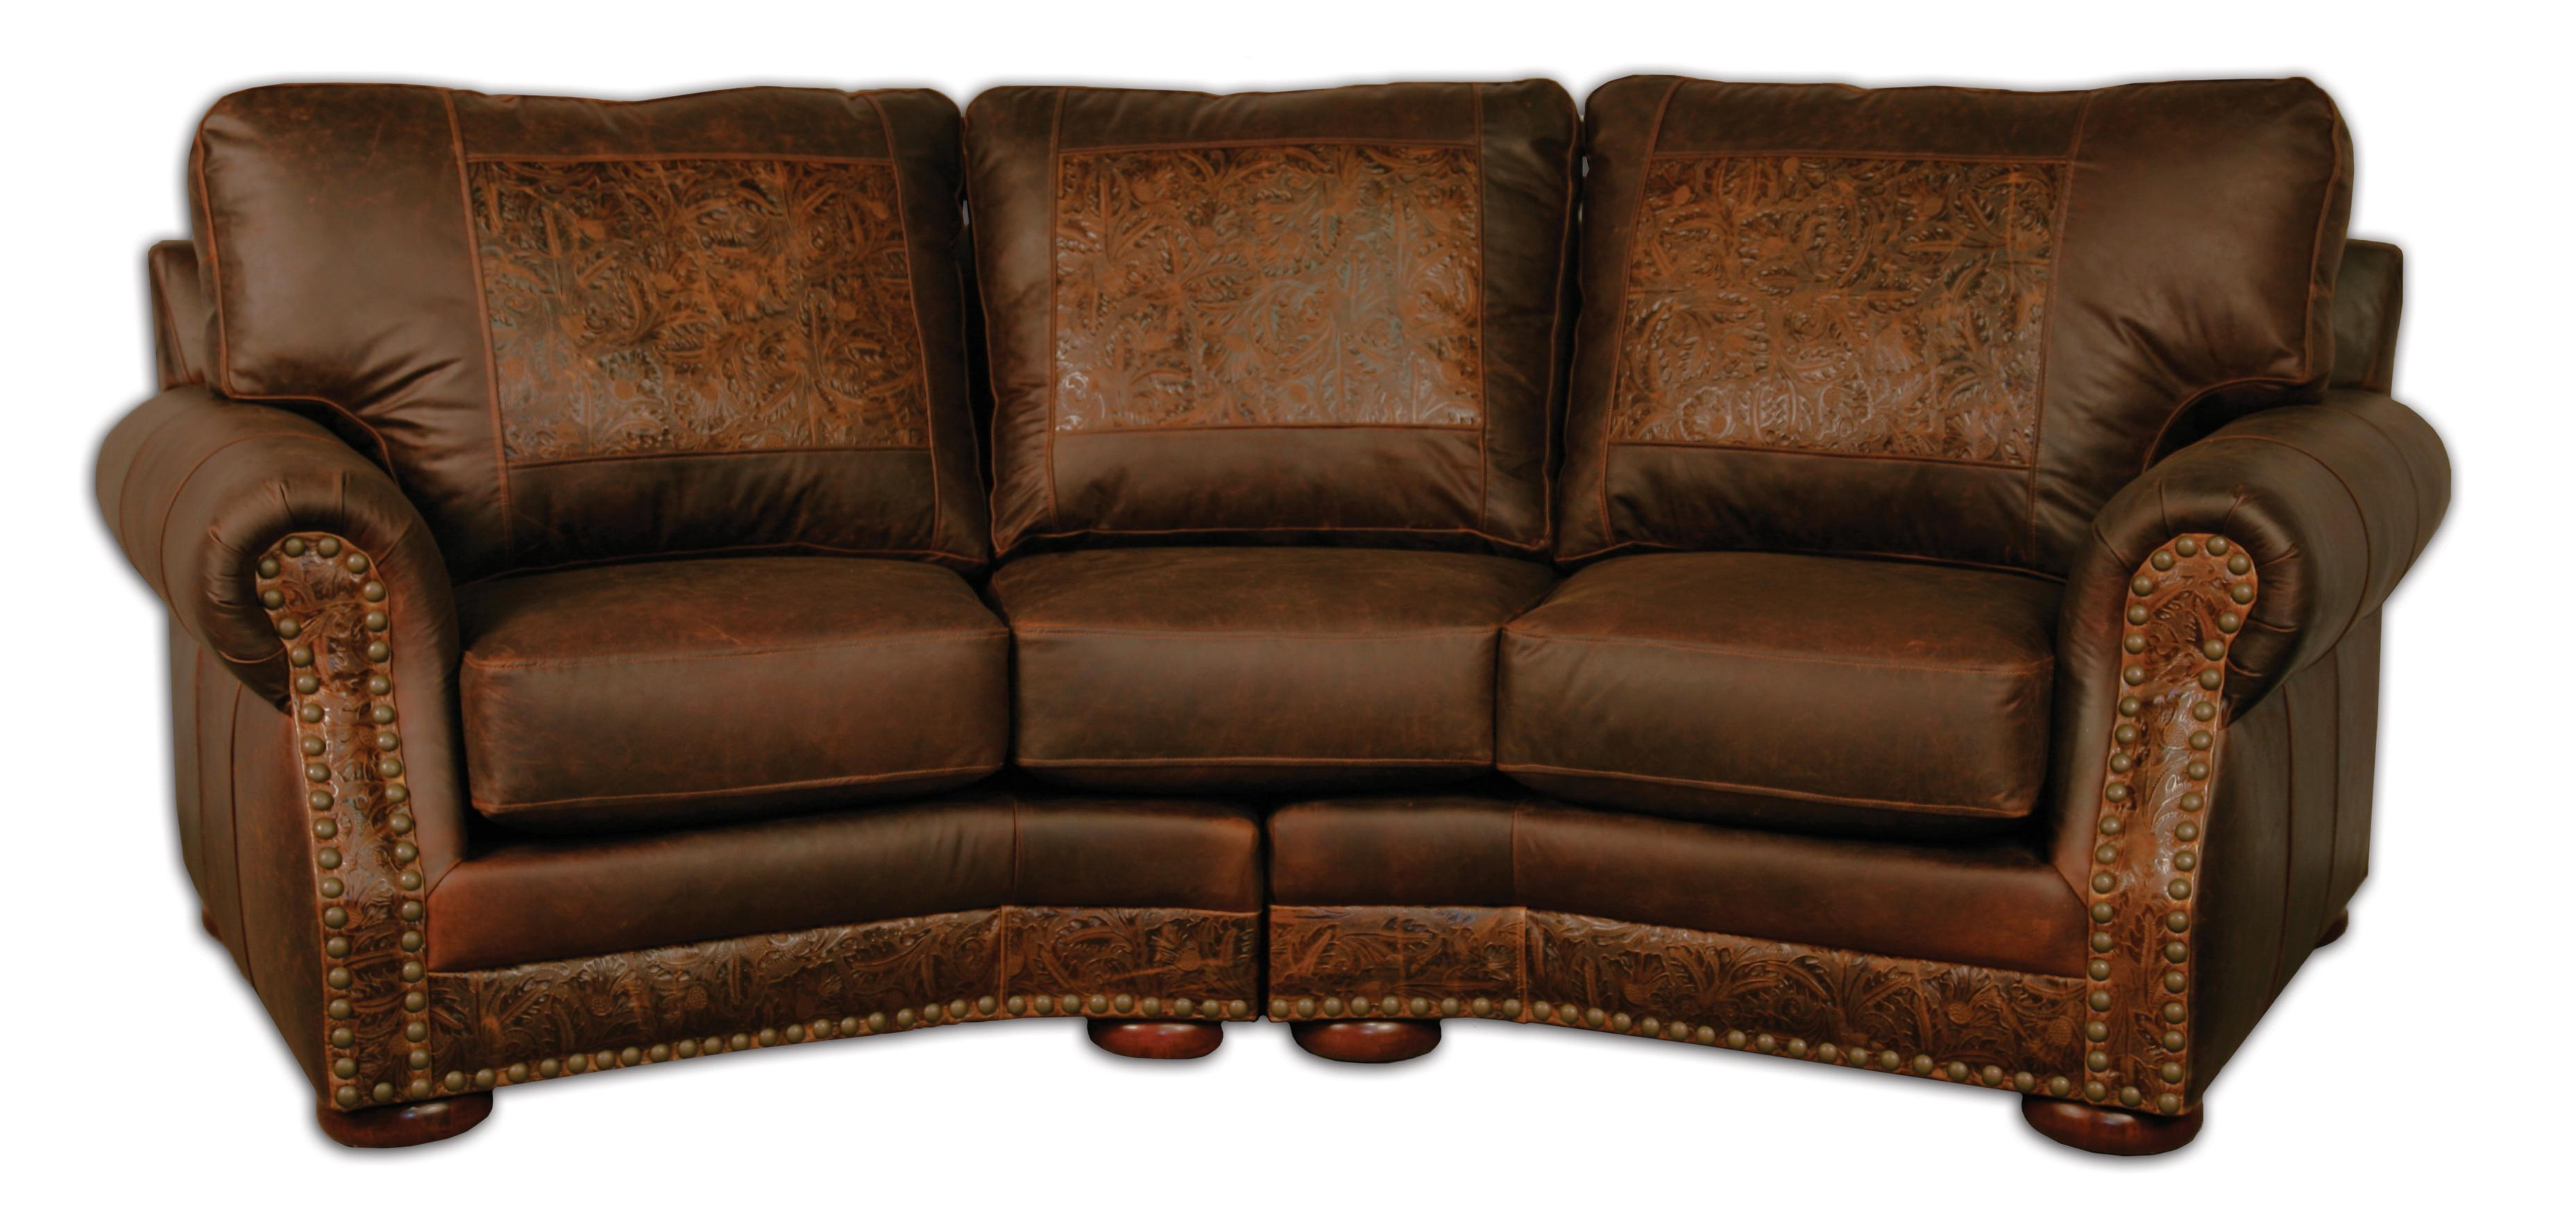 Cameron Sofa Chairs In Newest Cameron Ranch Conversation Sofa Dejavu Holster & Cosmo Tooled Leather (View 7 of 20)